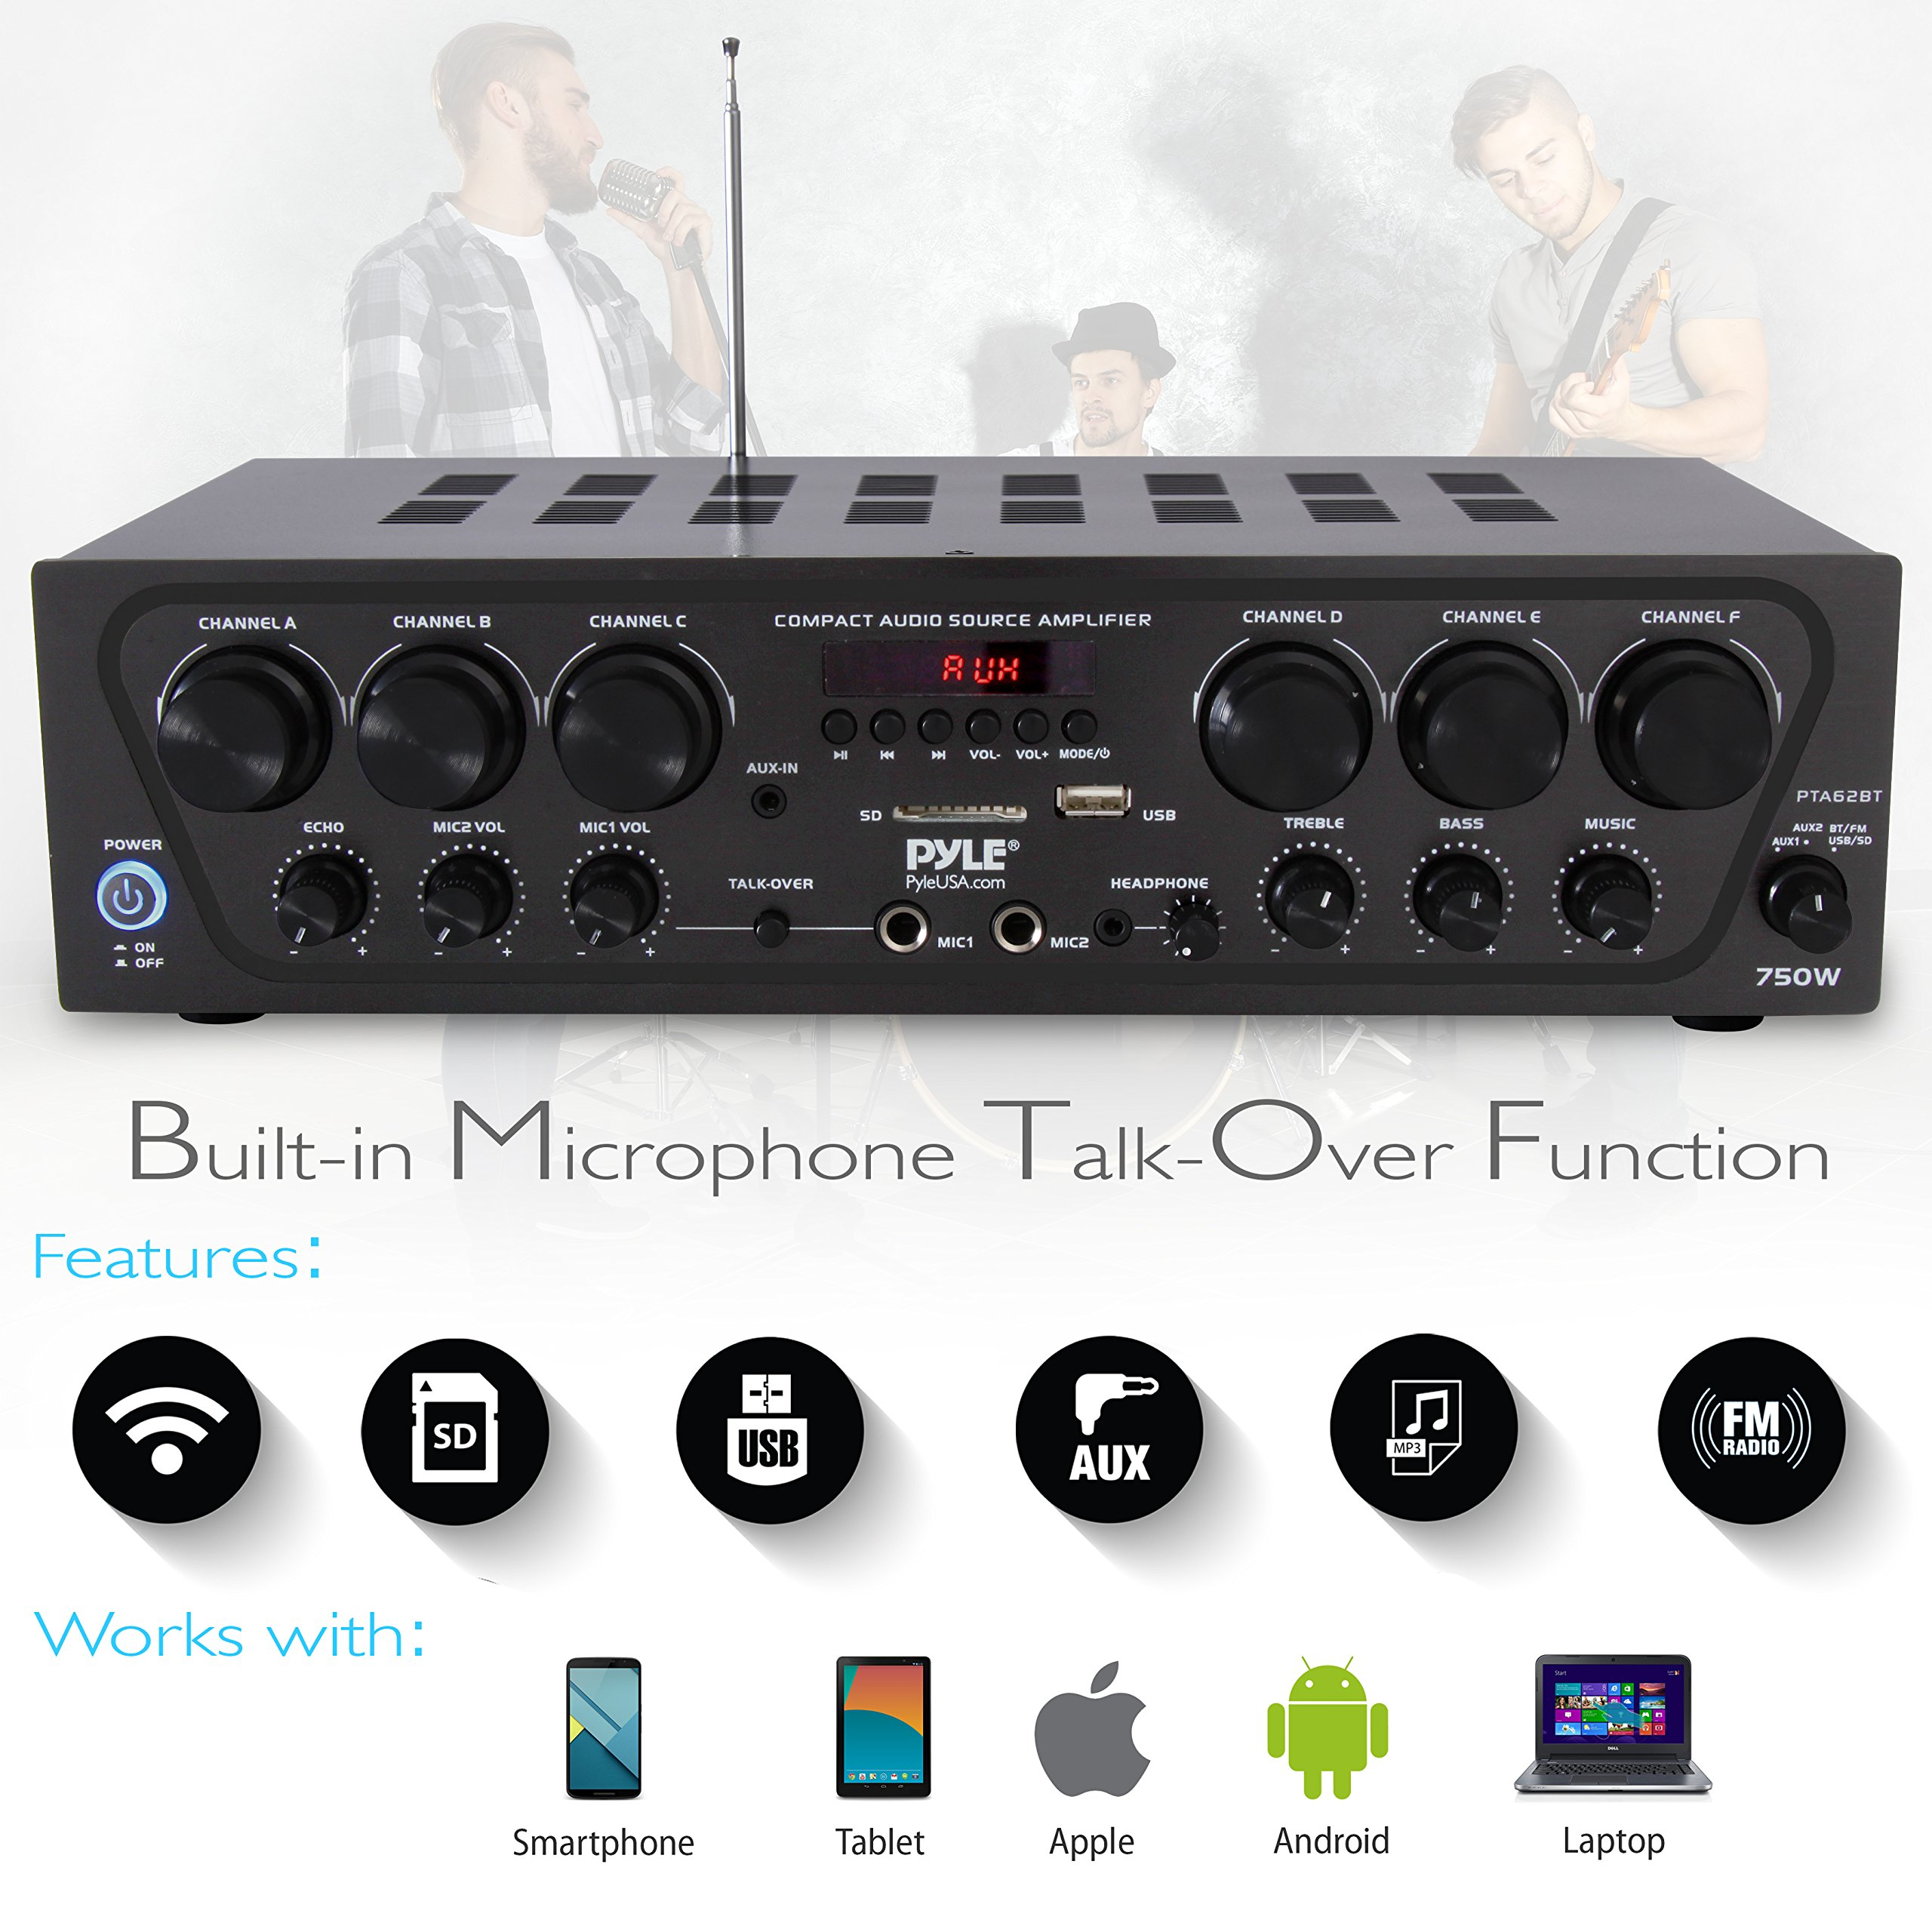 Bluetooth Home Audio Amplifier System - Upgraded 2018 6 Channel 750 Watt Wireless Home Audio Sound Power Stereo Receiver w/ USB, Micro SD, Headphone, 2 Microphone Input w/ Echo, Talkover for PA - Pyle by Pyle (Image #3)